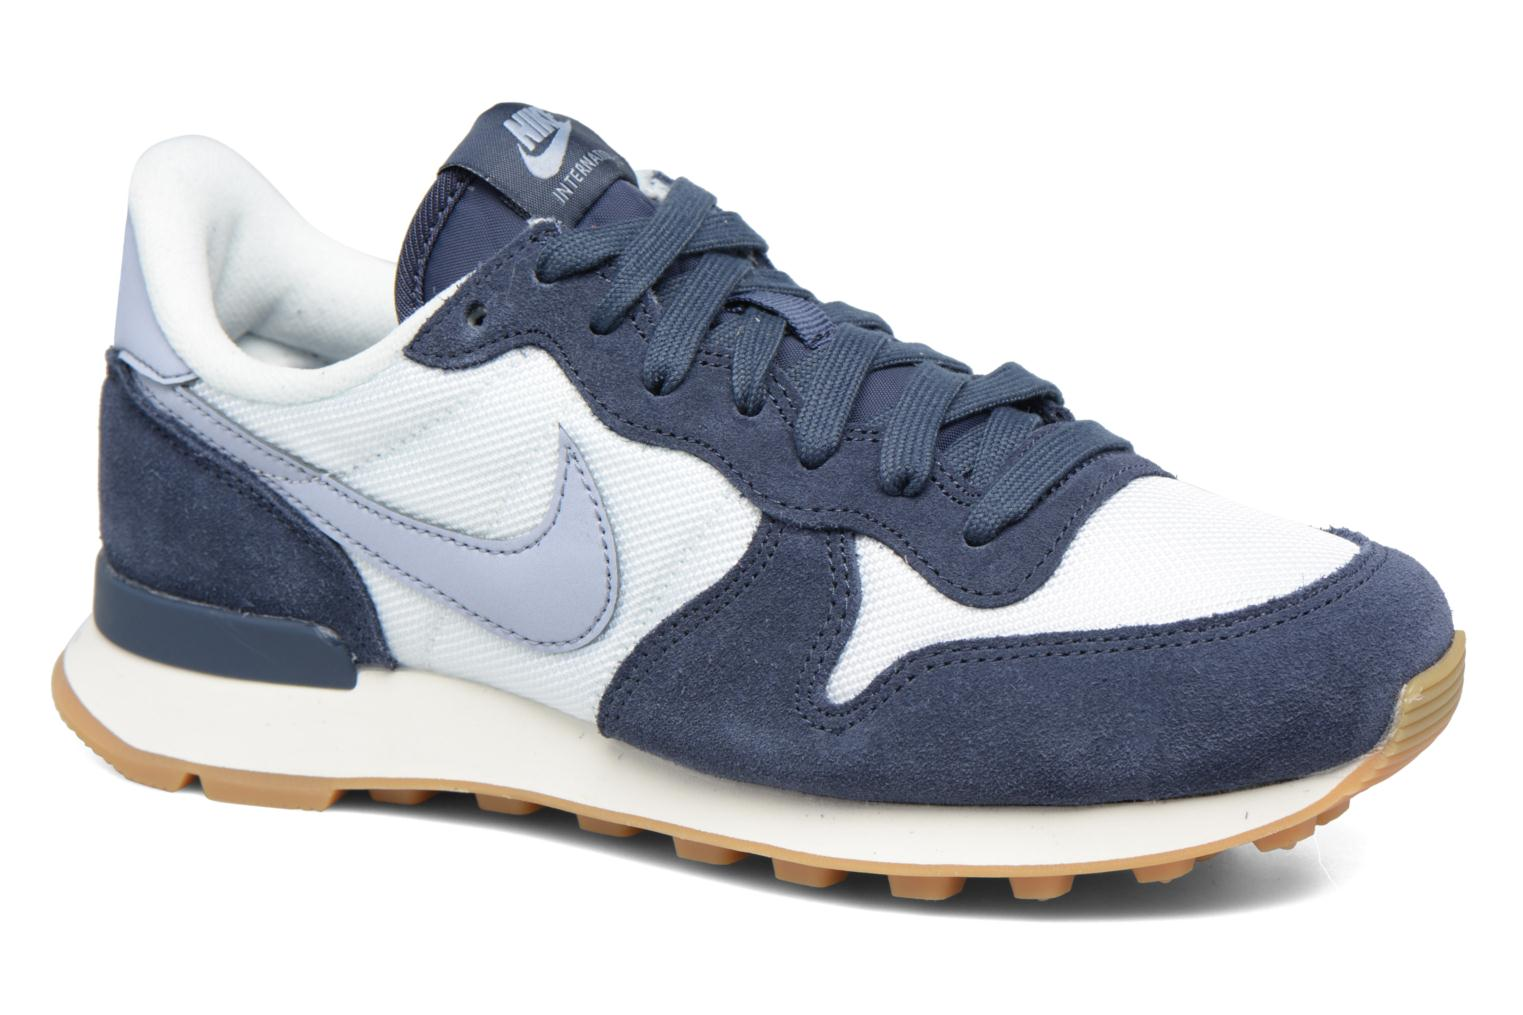 Wmns Internationalist Summit White/Glacier Grey-Thunder Blue